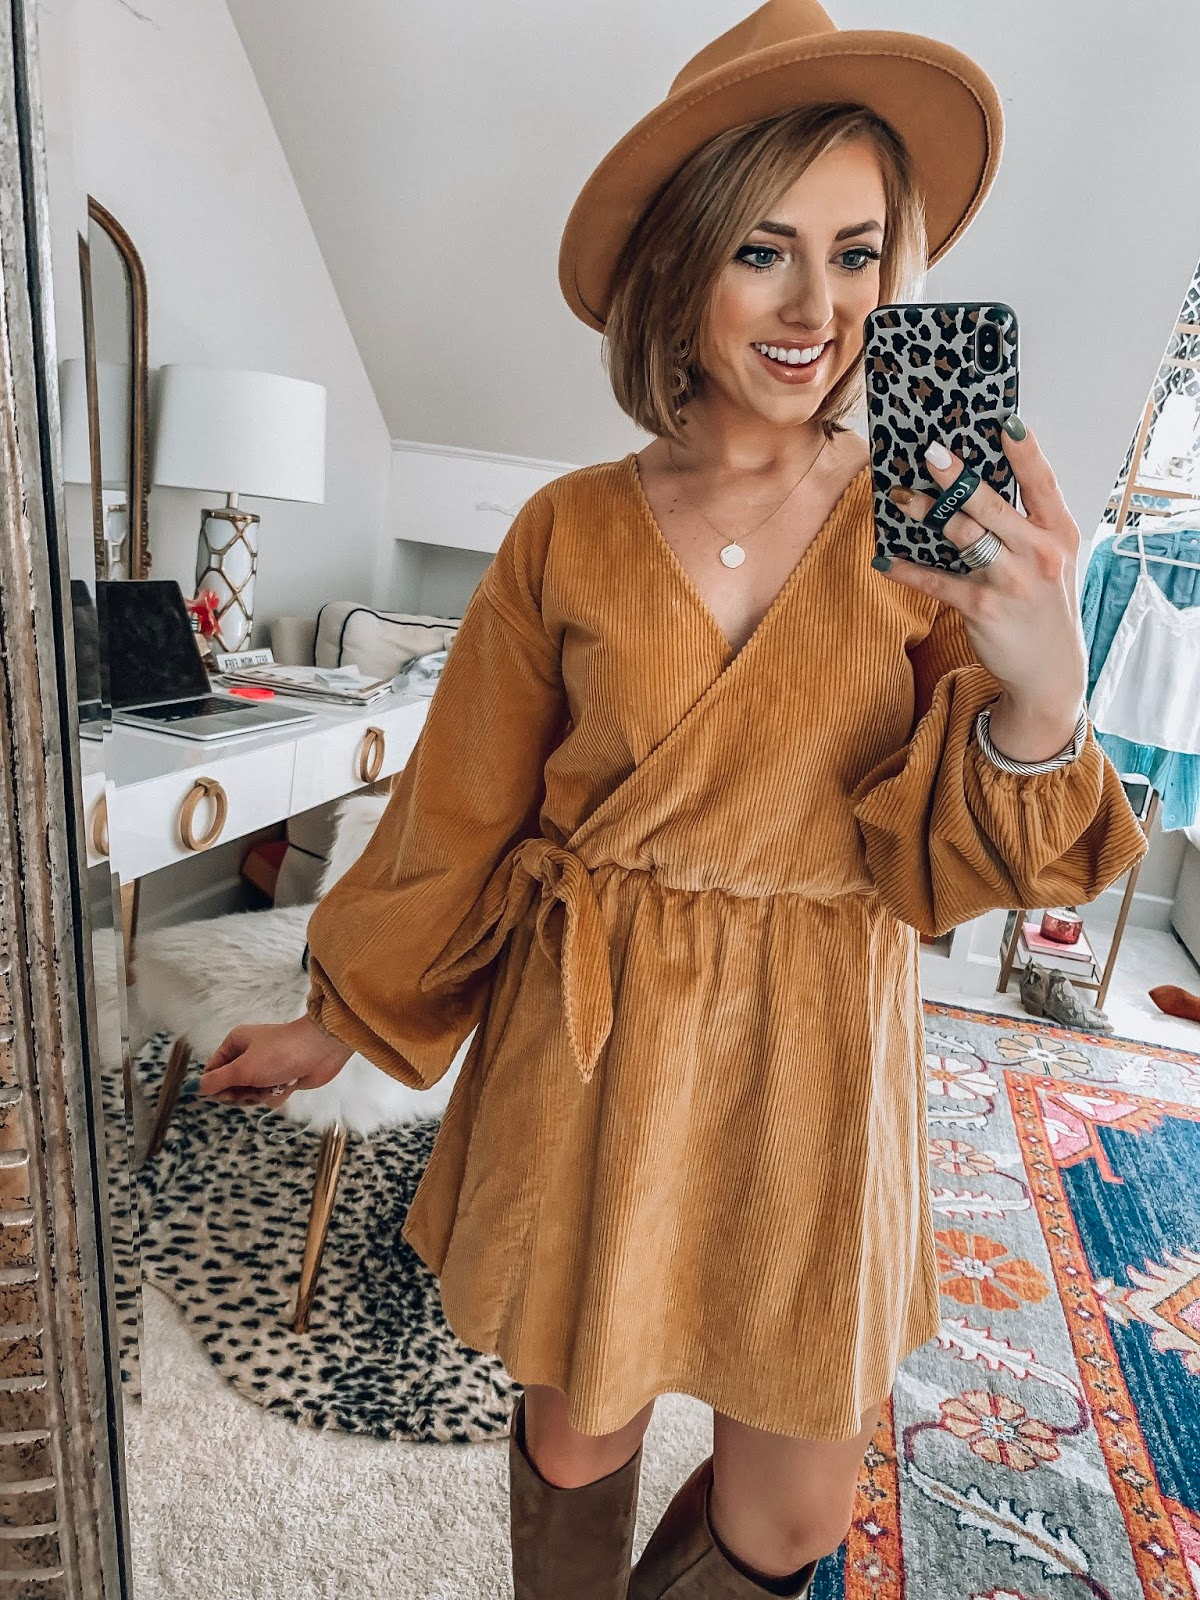 ASOS New Fall Arrivals - $51 Wrap Corduroy Dress - Something Delightful Blog #fallstyle #affordablefashion